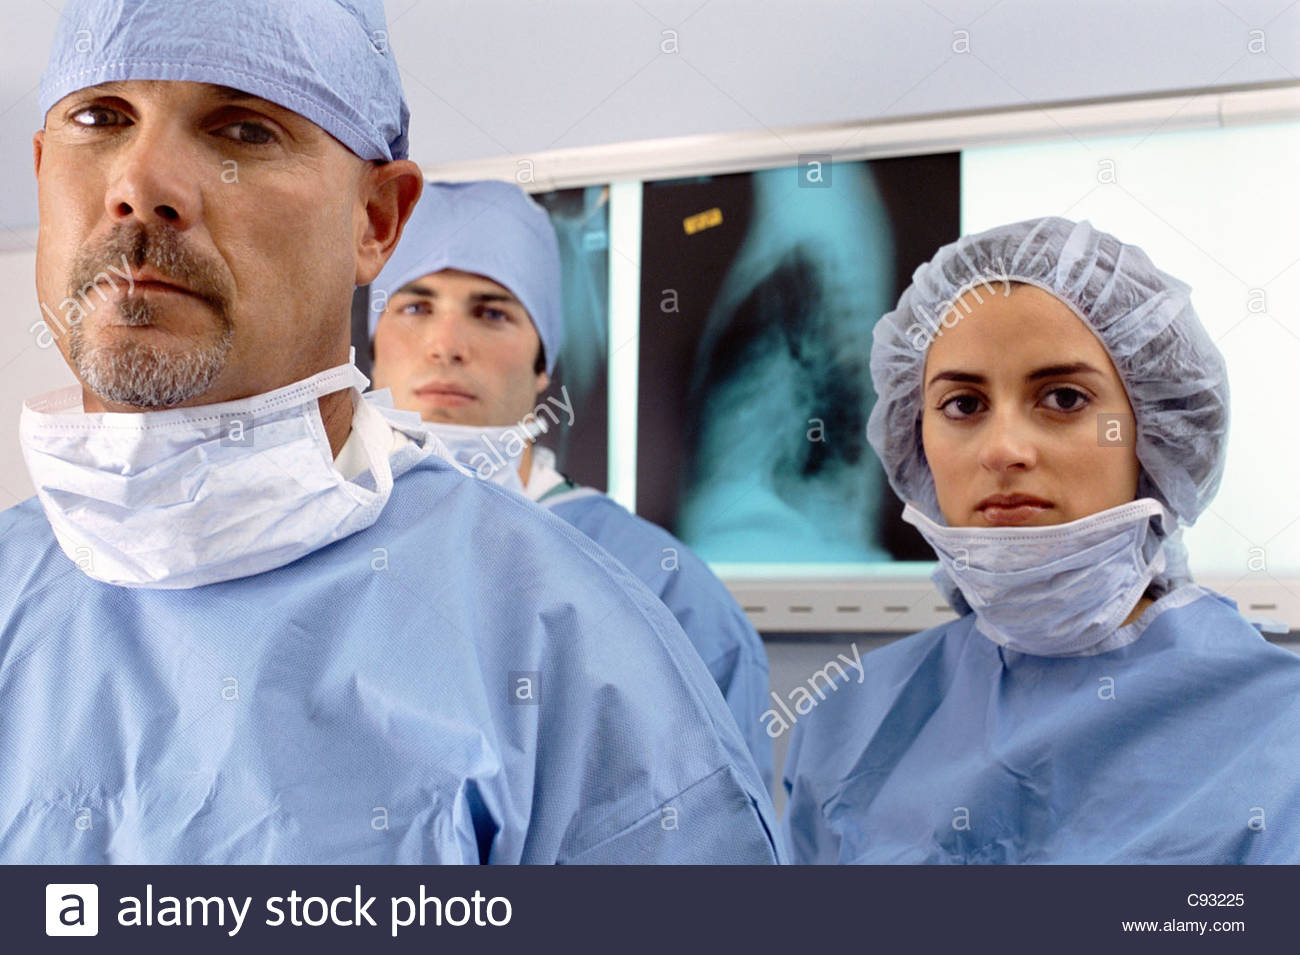 Portrait of serious surgeons in front of x-rays - Stock Image